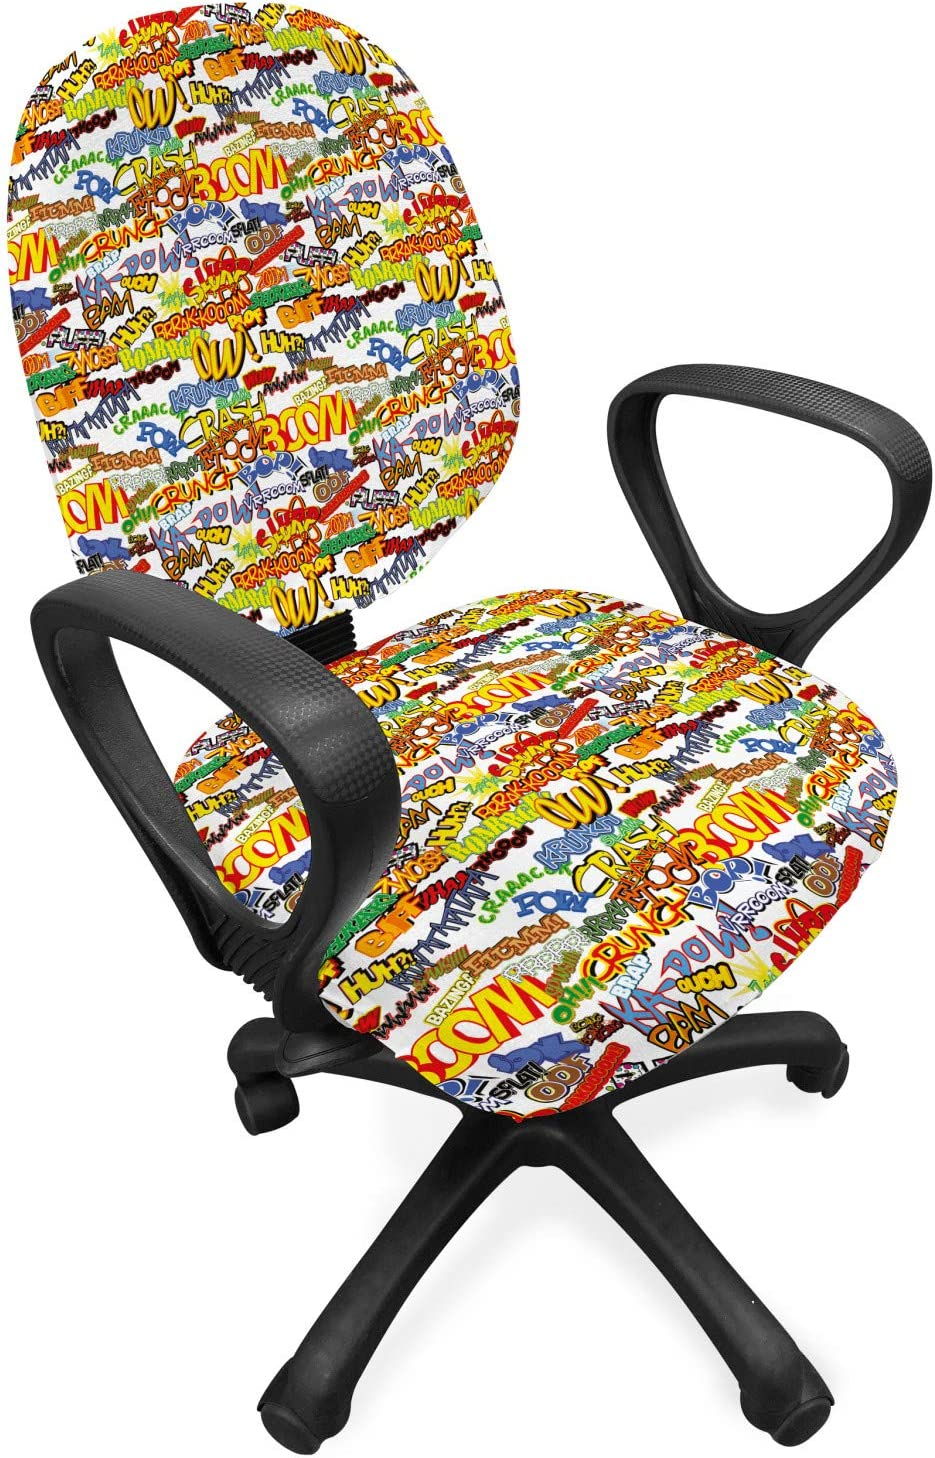 Lunarable Superhero Office Chair Slipcover, Retro Comic Book Expressions Humor Cartoon Scream Crash Pow Vintage Design, Protective Stretch Decorative Fabric Cover, Standard Size, Red Yellow